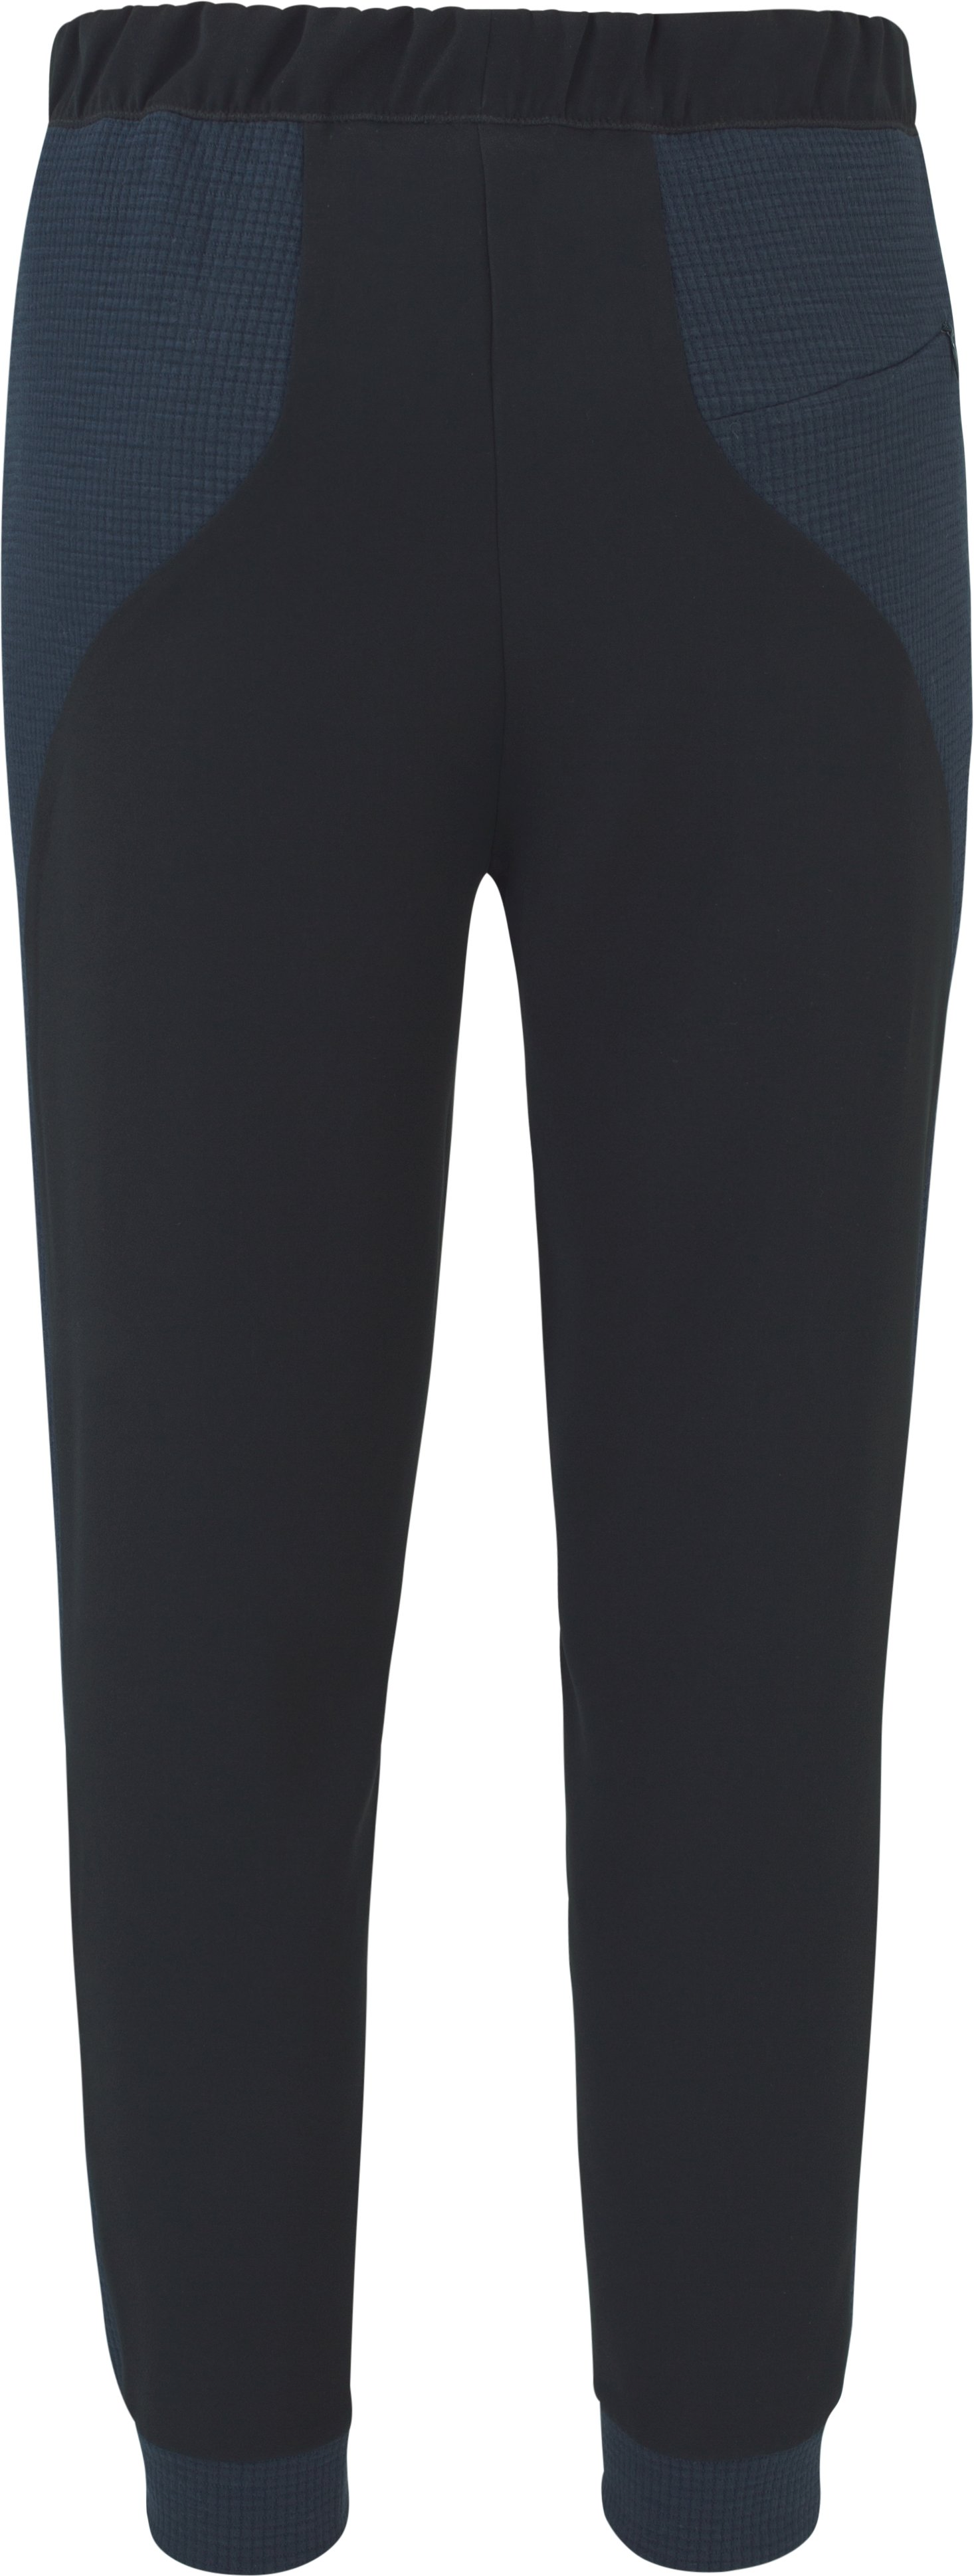 Women's Sweatpants, Black , undefined